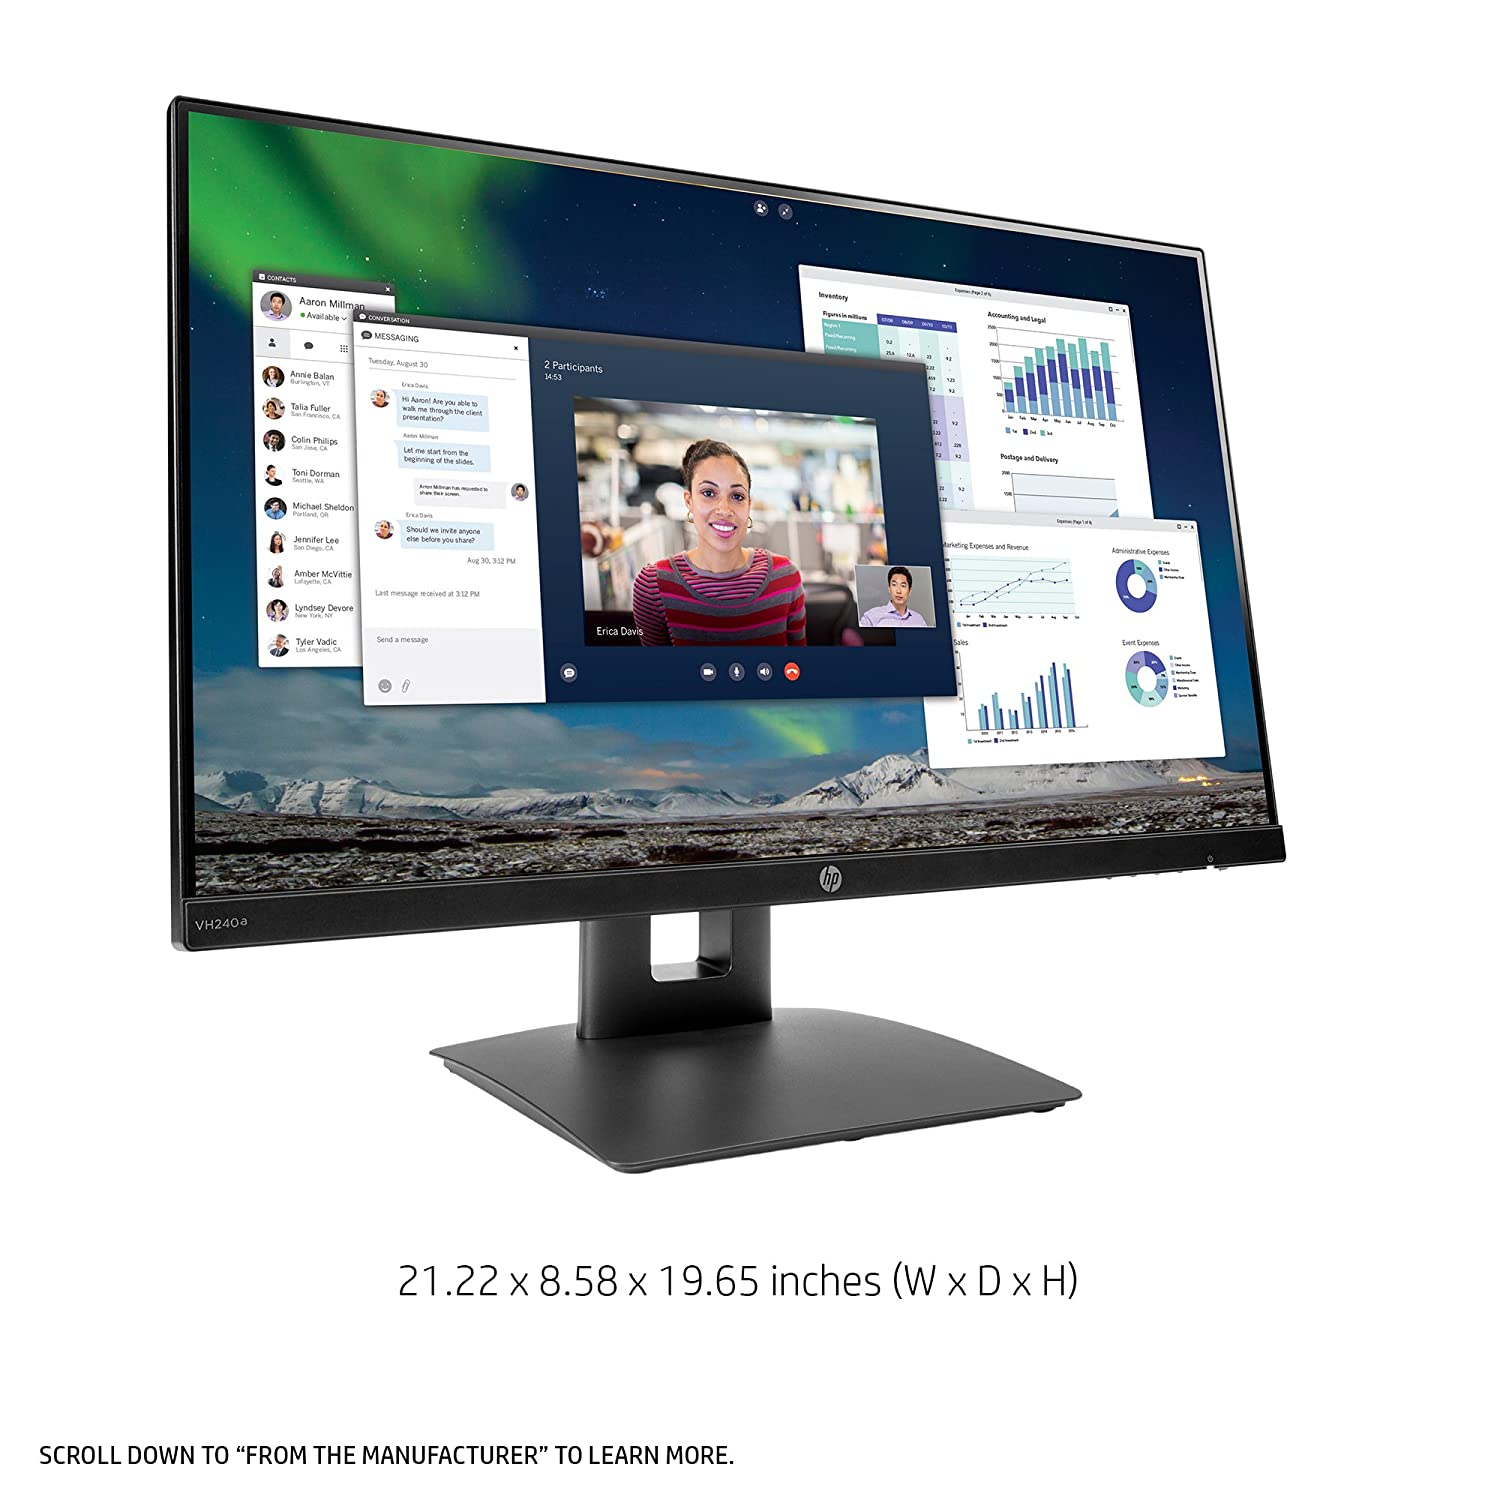 19e48d2e5d64 Amazon.com  HP 23.8-inch FHD IPS Monitor with Tilt Height Adjustment and  Built-in Speakers (VH240a